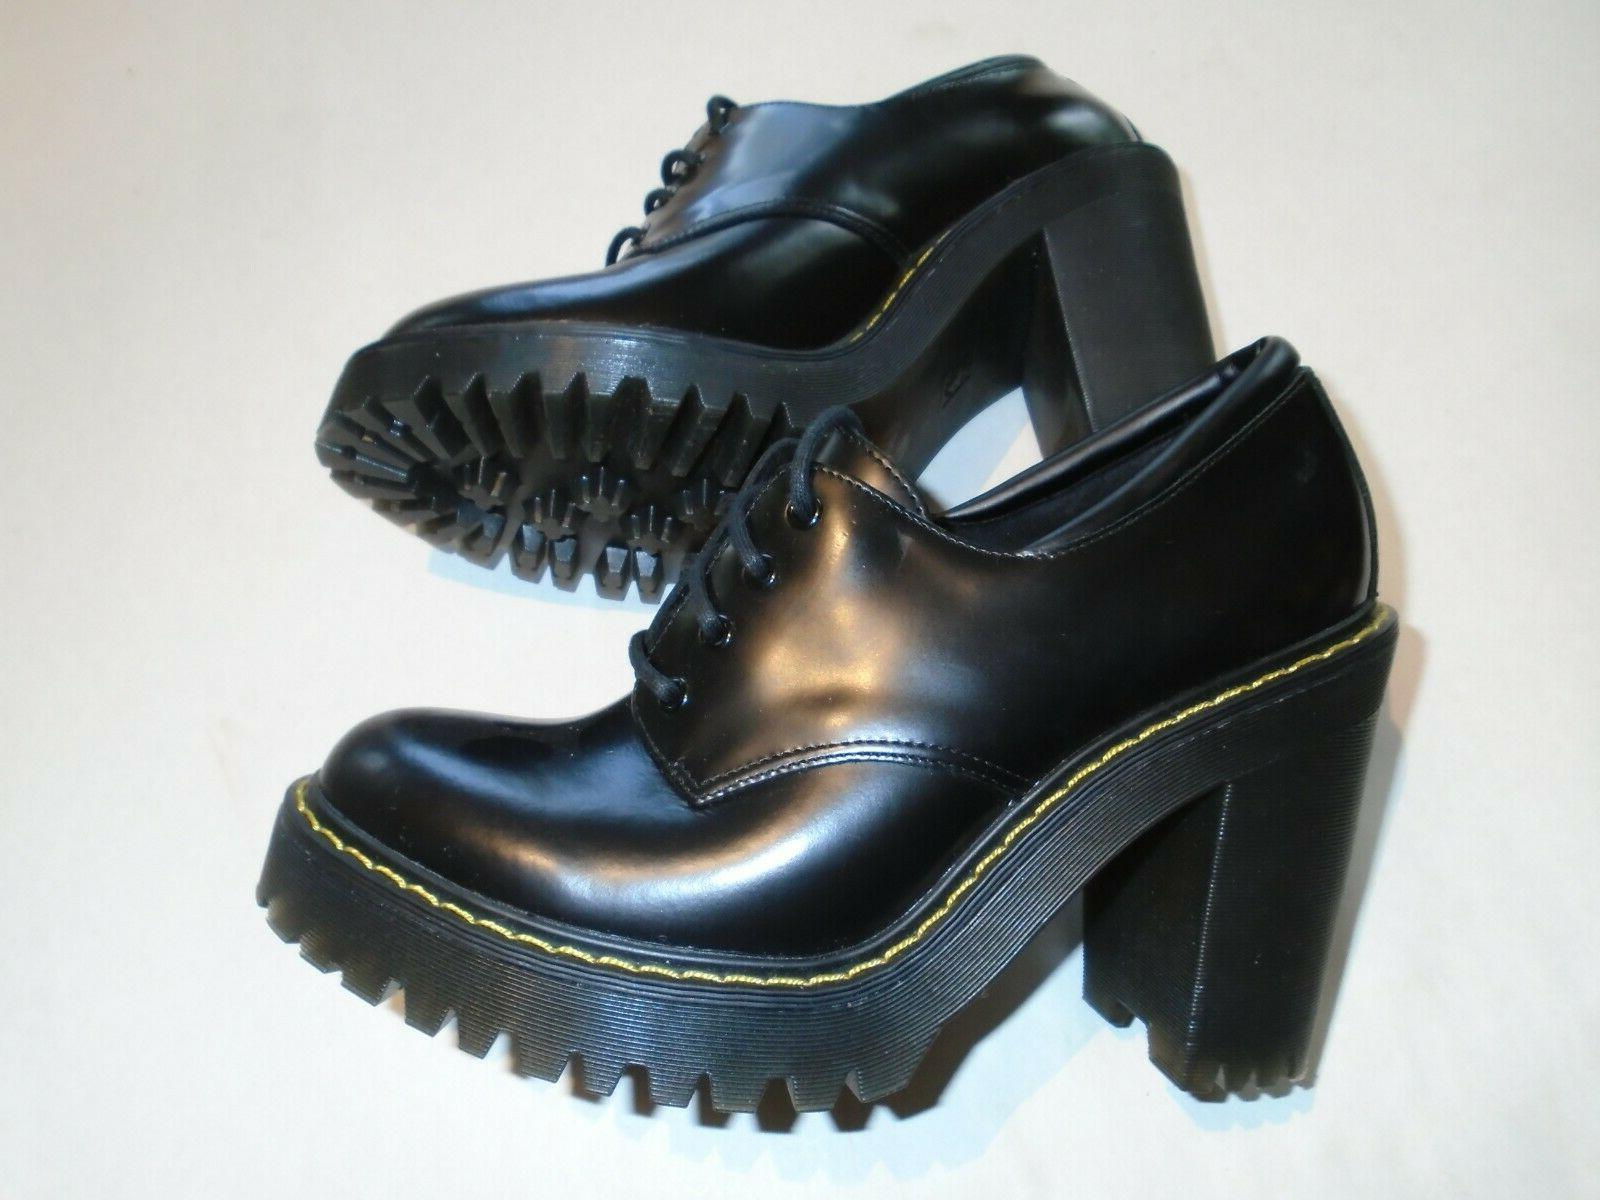 new dr martens doc salome women s